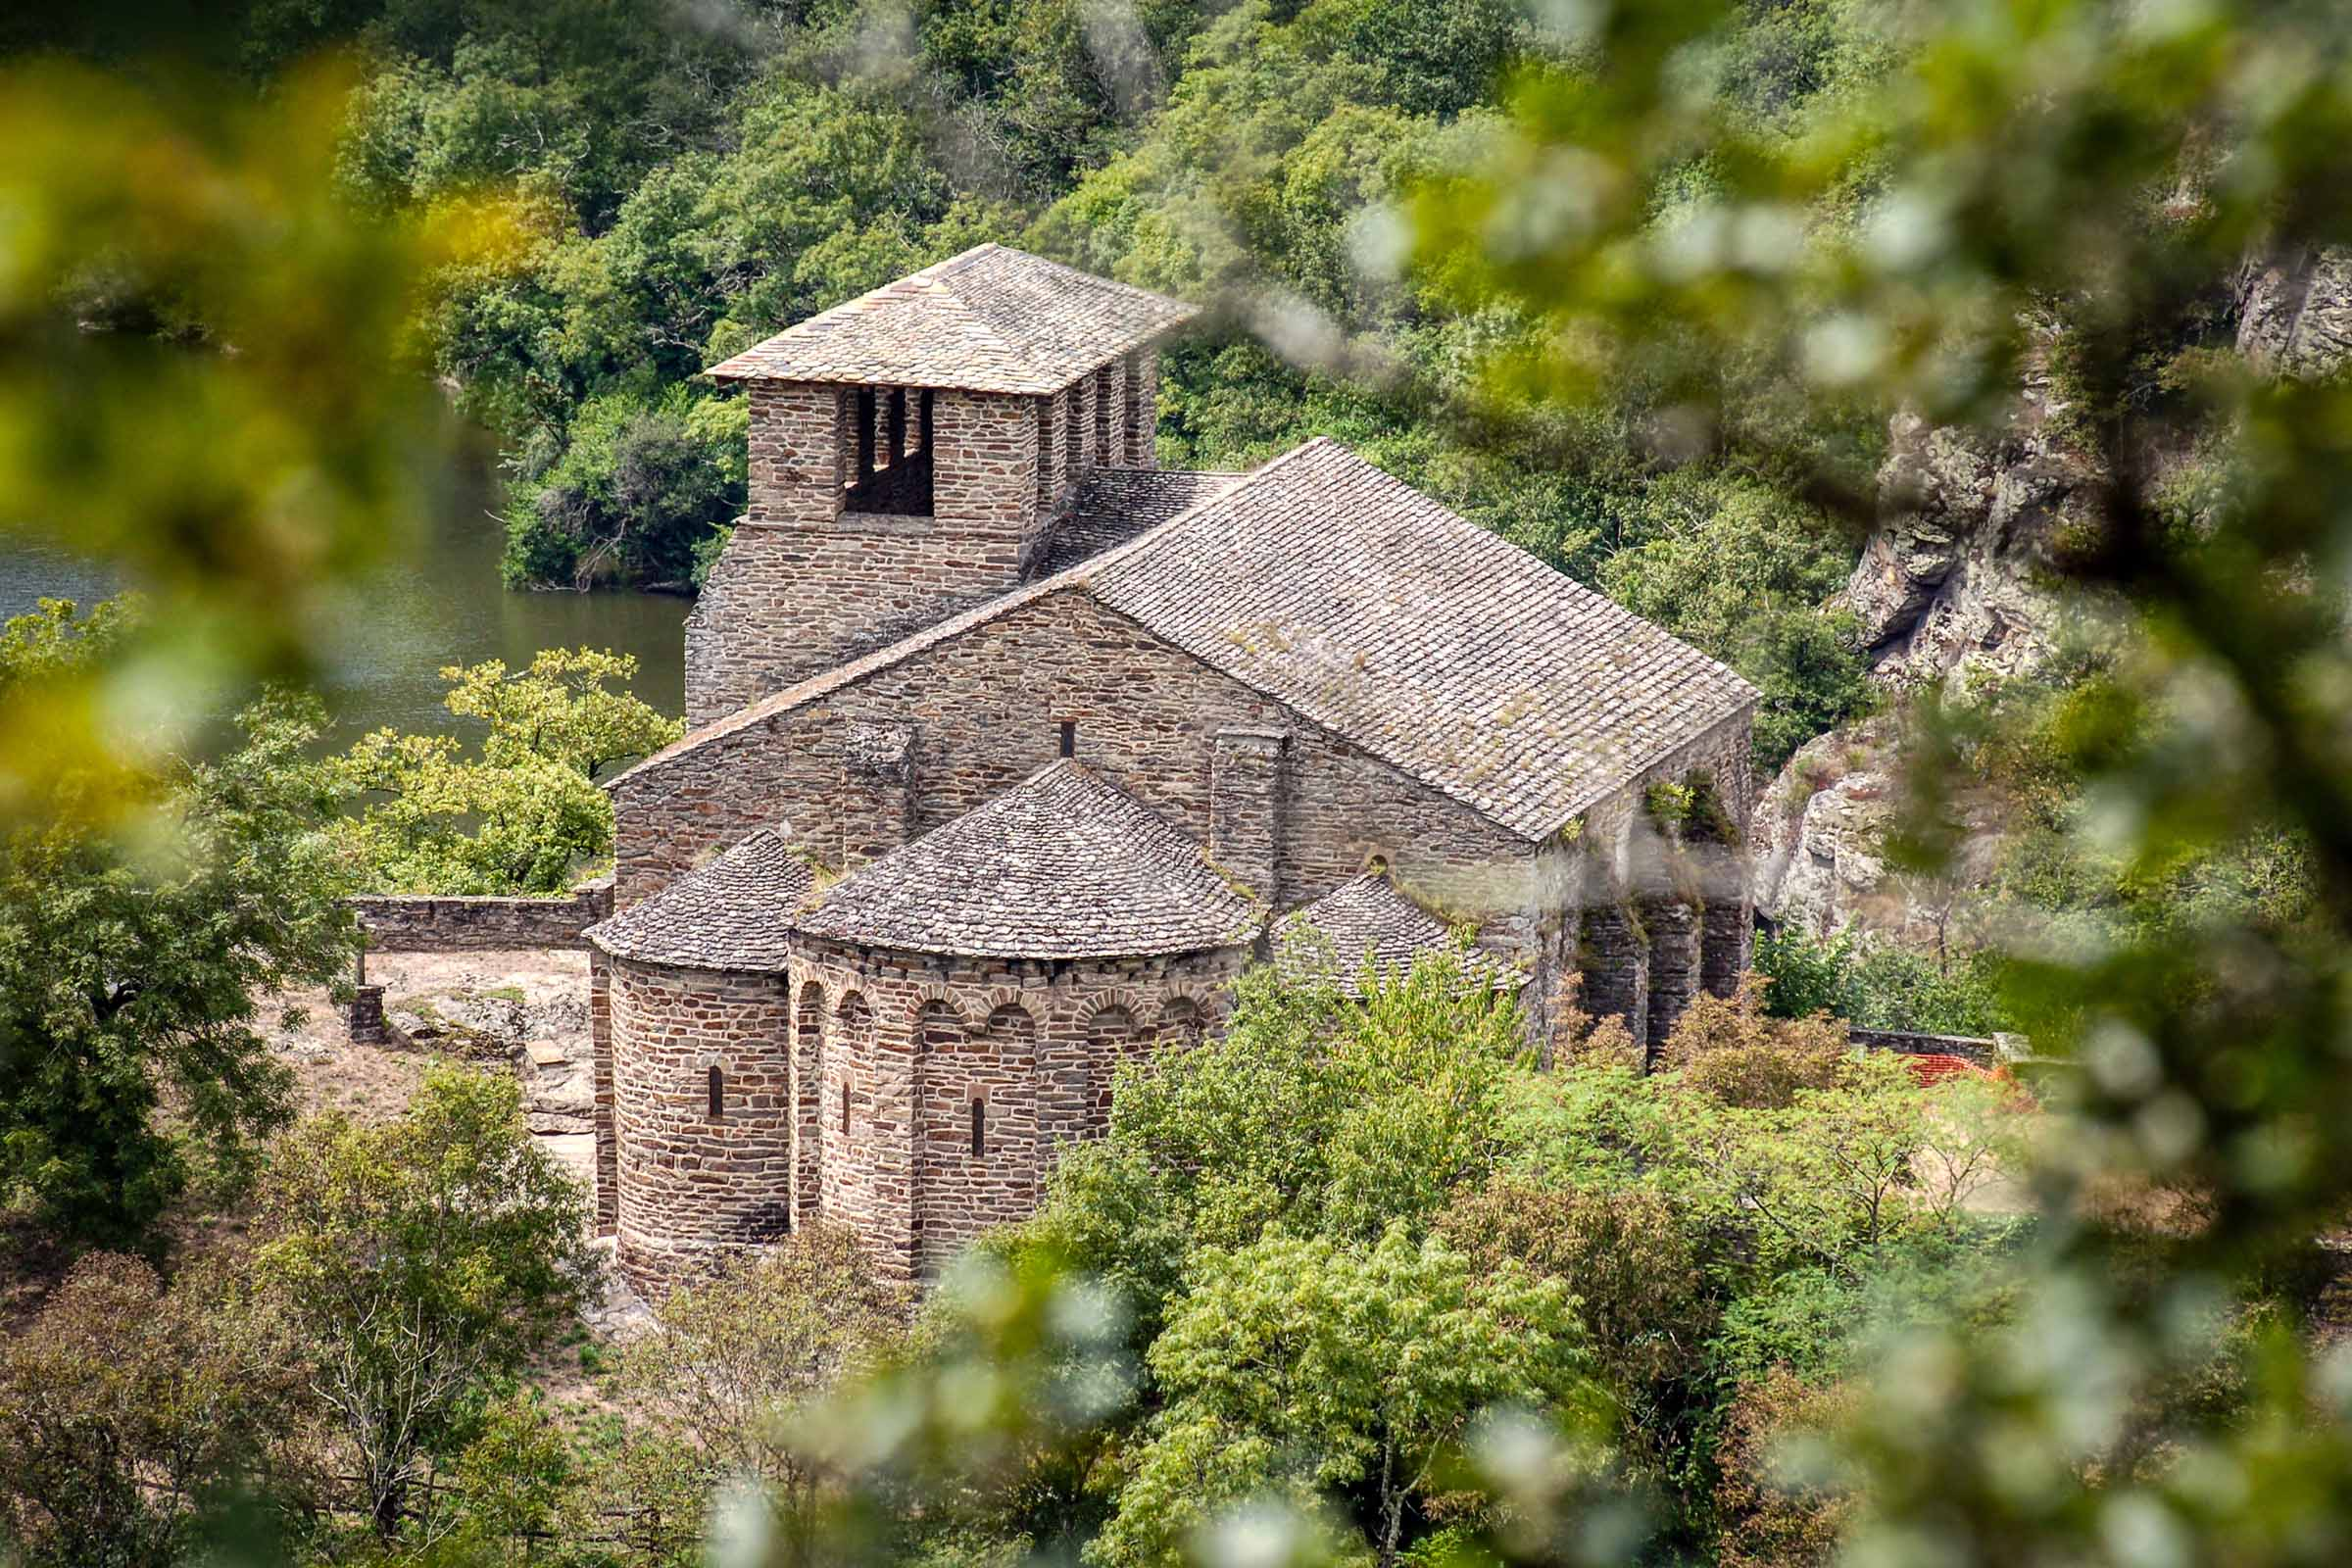 Chapelle de Las Planques through the trees